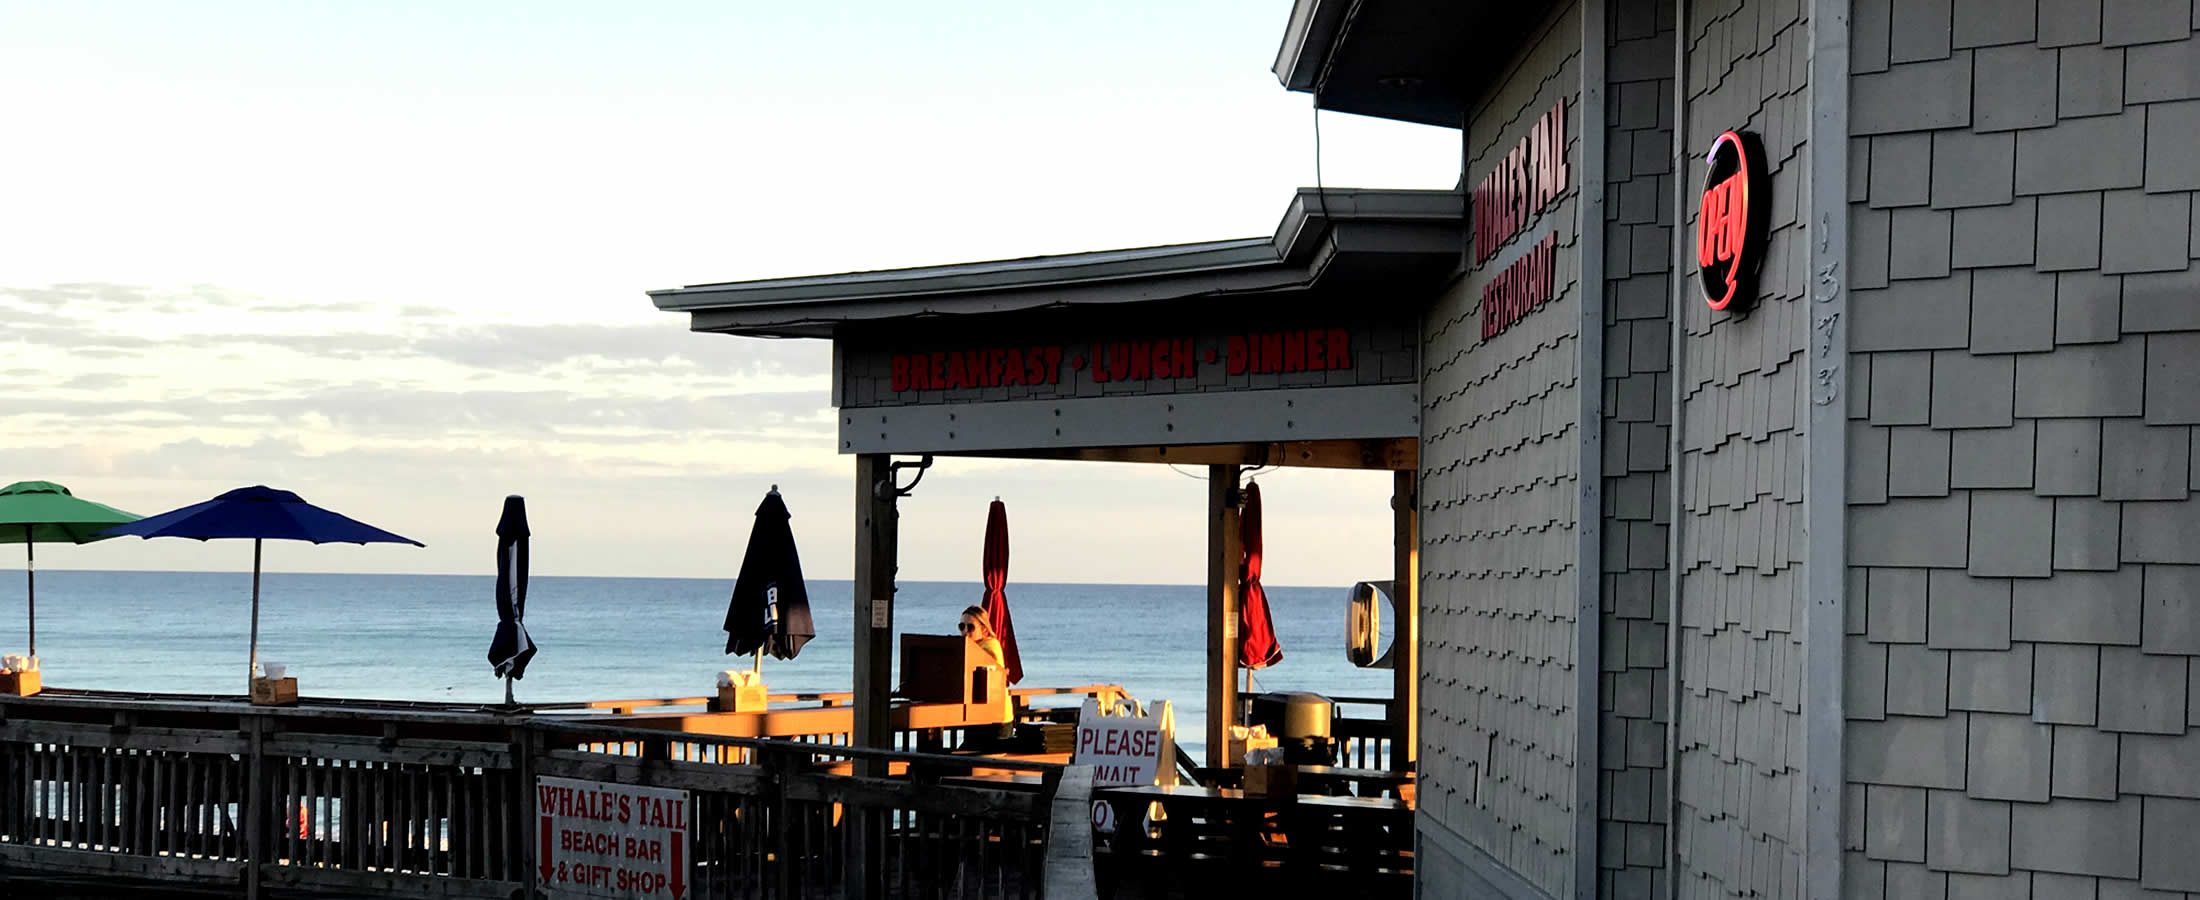 Destin florida dating bars and clubs